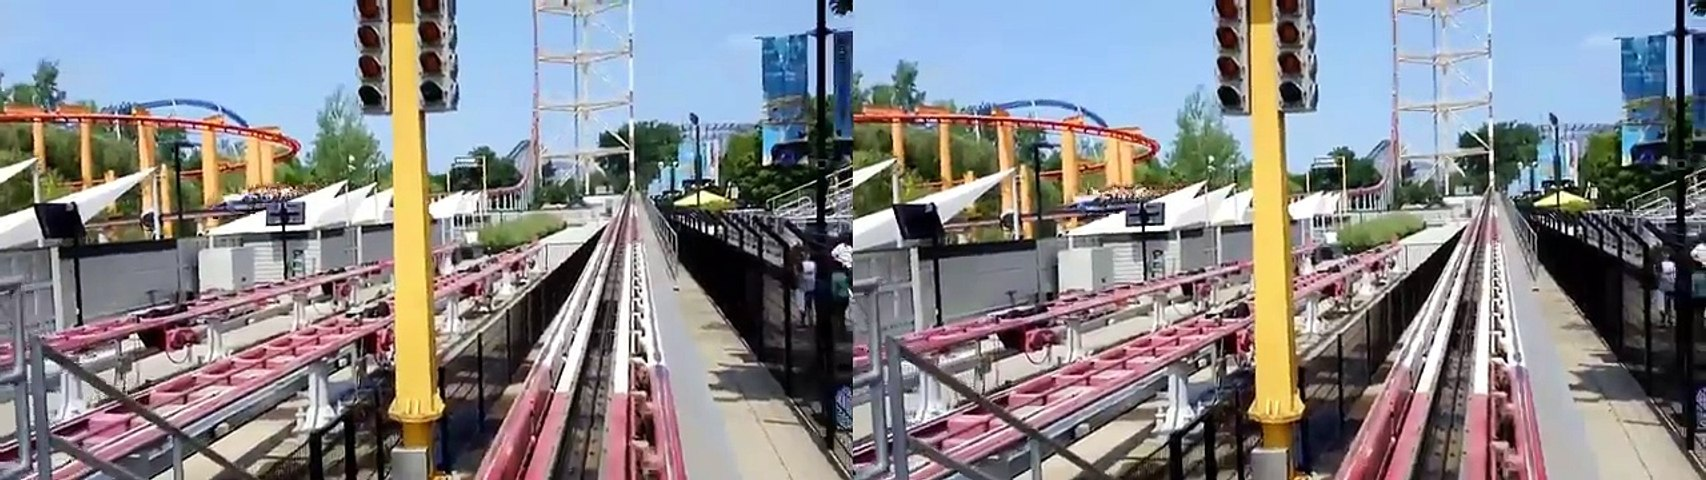 ROLLER COASTER Top Thrill Dragster Front Seat POV Cedar Point Side by side SBS Virtual Reality VR